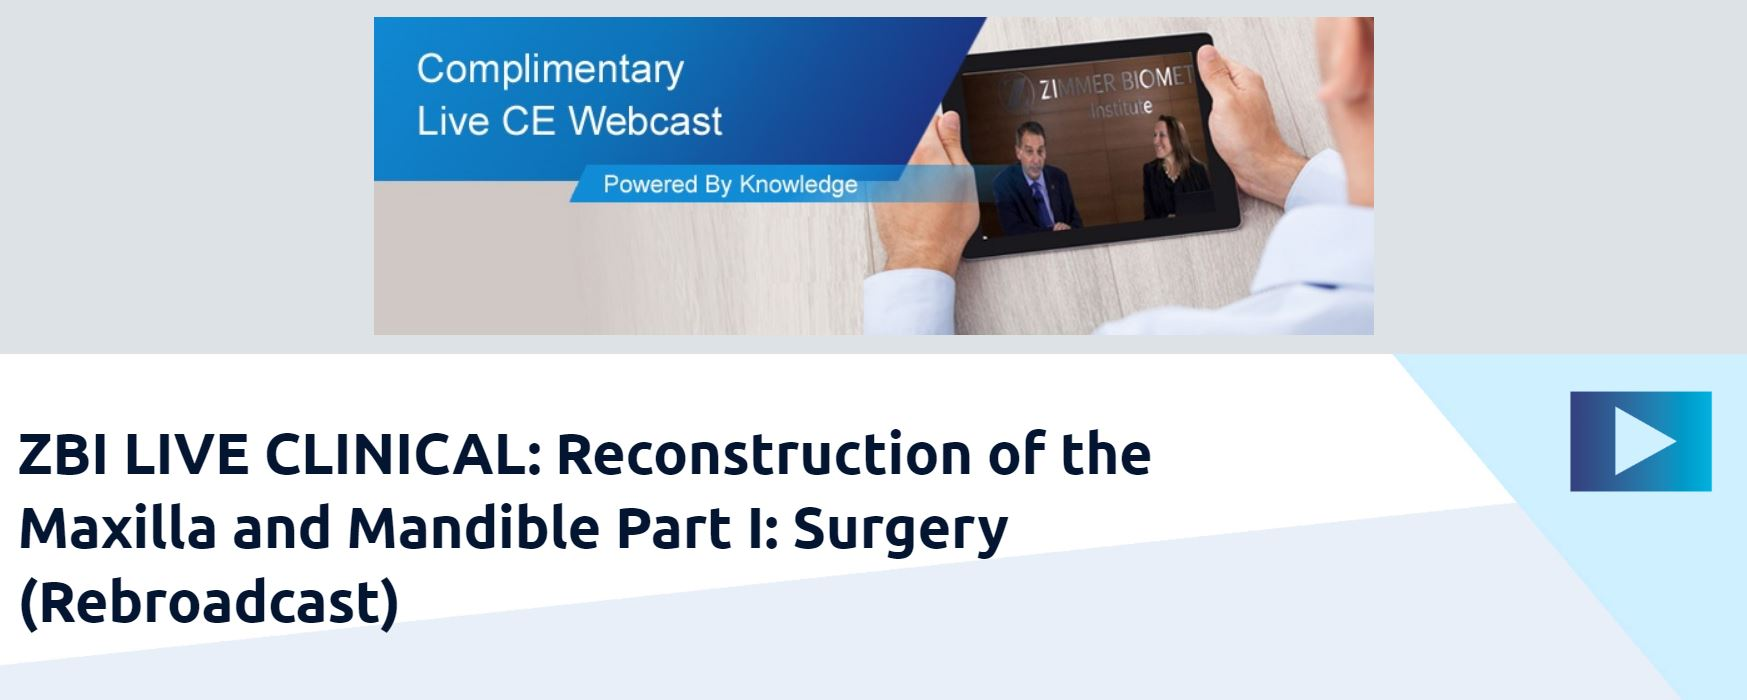 ZBI live Clinical - Reconstruction of the Maxilla and Mandible Part I Surgery